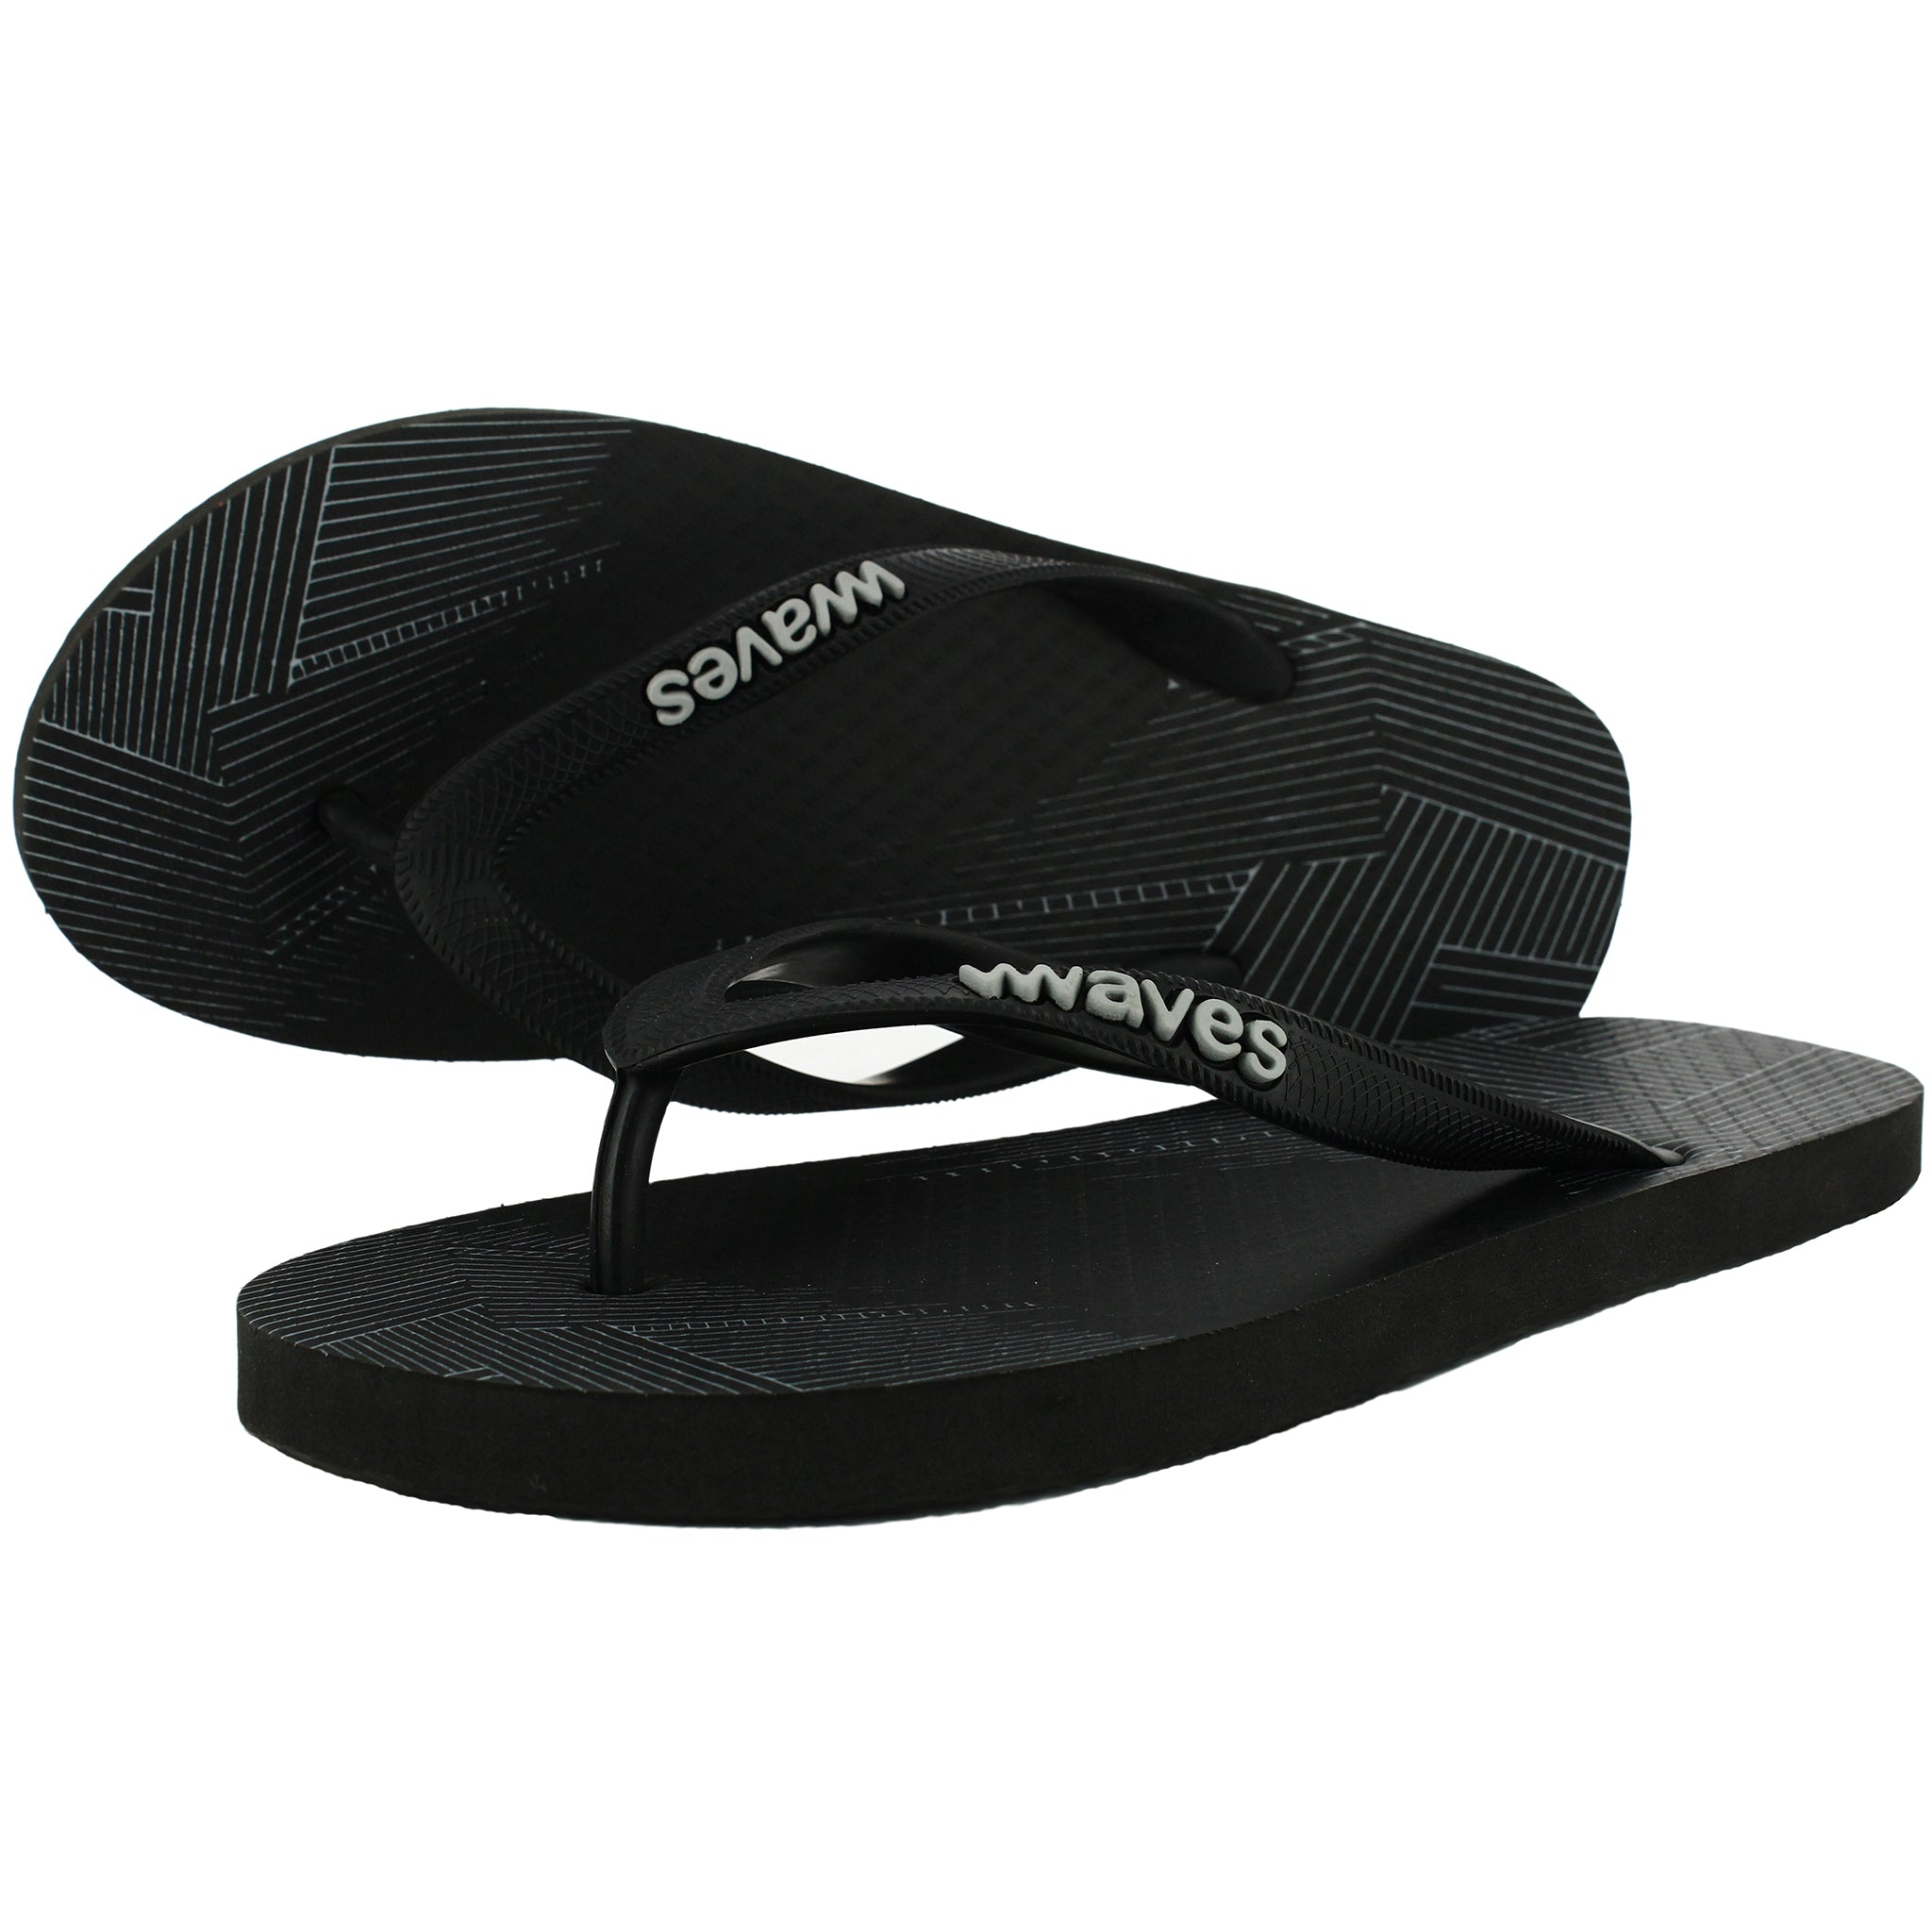 Black Lined Classic Flip Flops, Men's